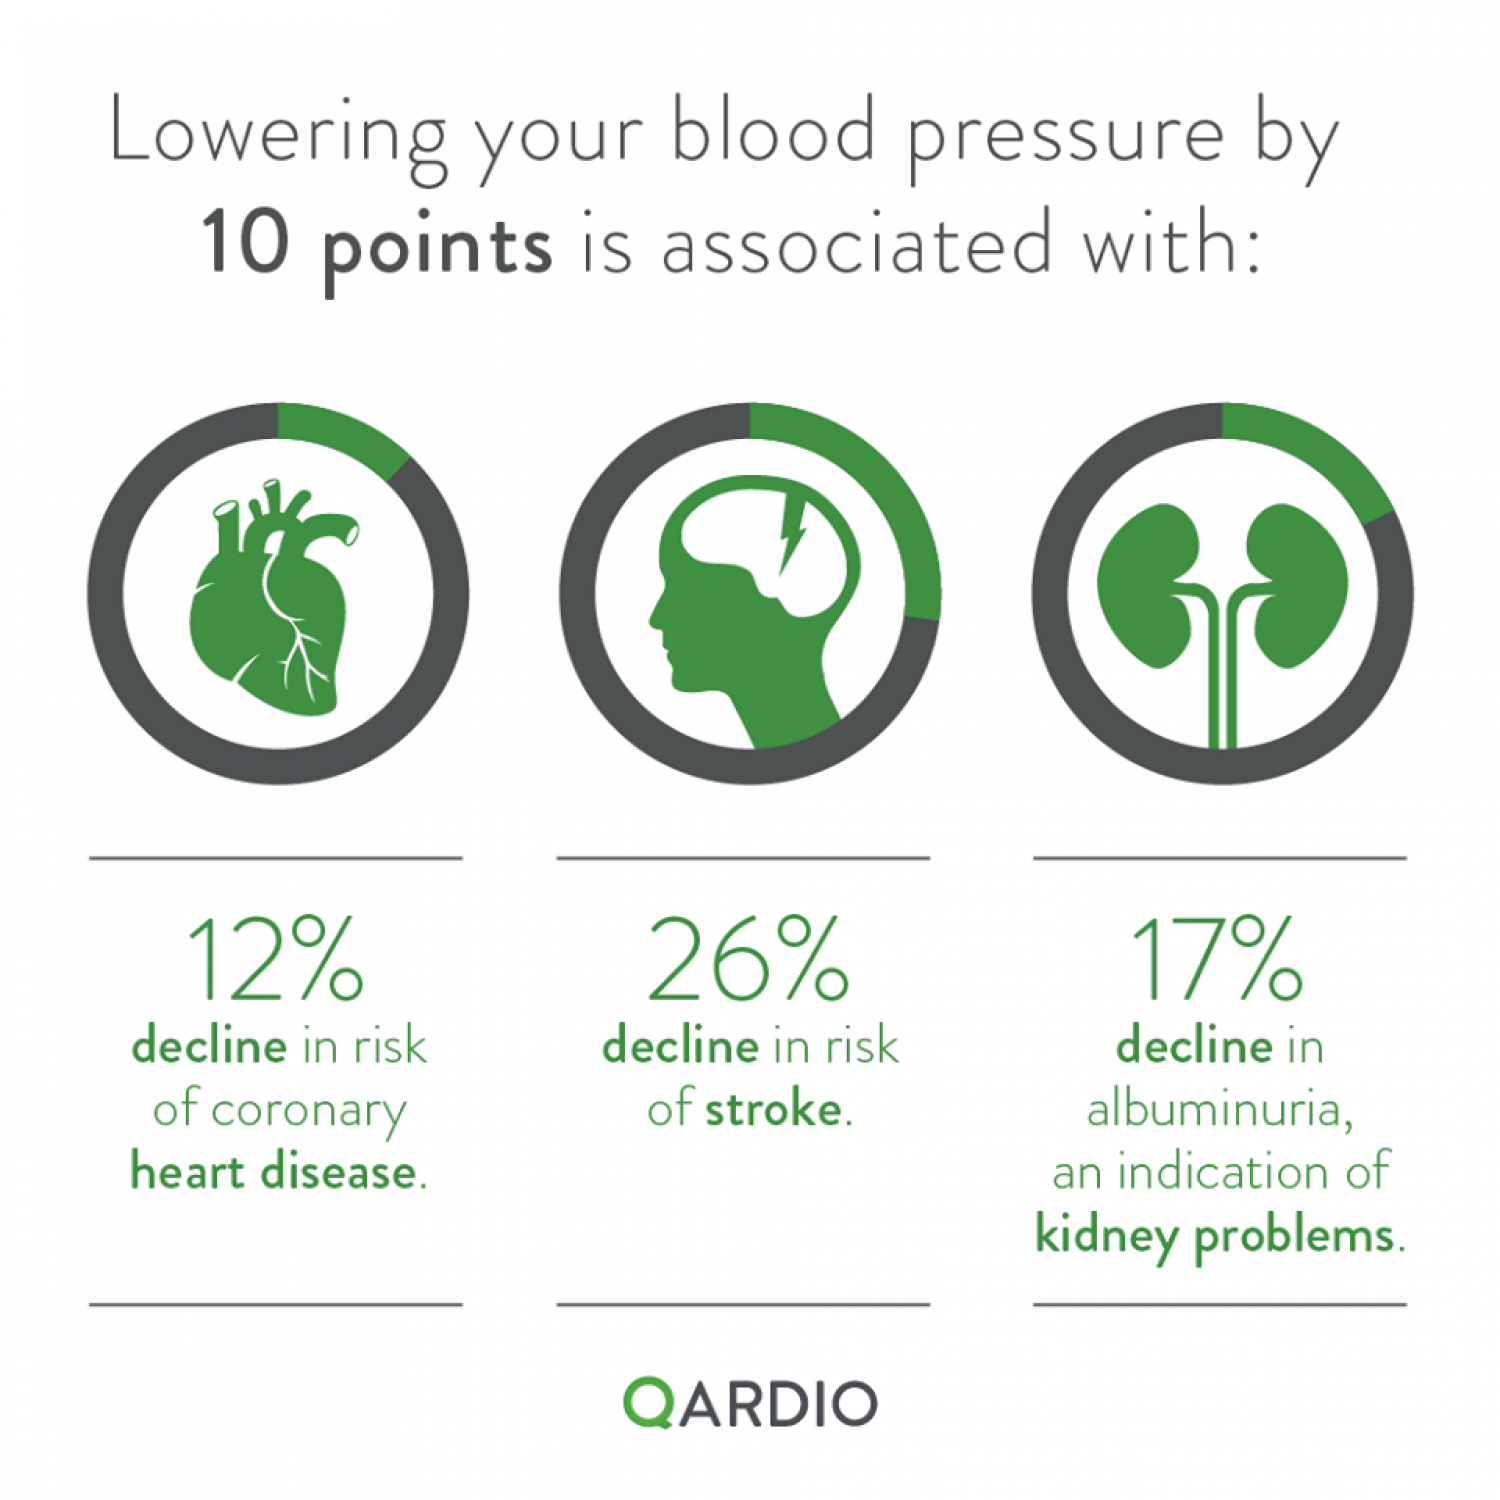 Benefits of Lowering Blood Pressure by Just 10 points Infographic